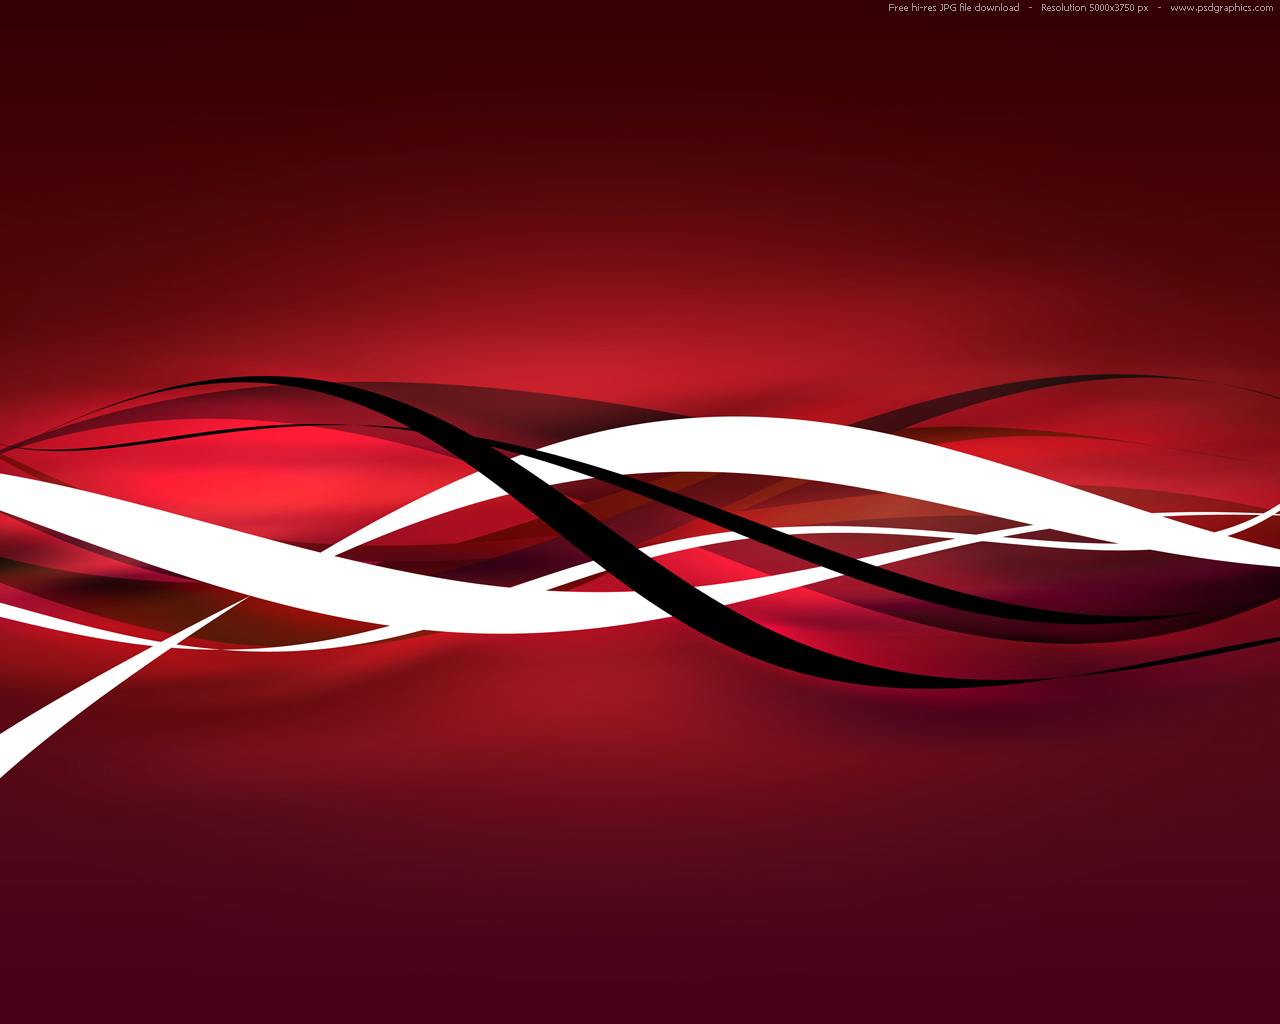 Abstract Backgrounds Red Backgrounds for Computer 1280x1024